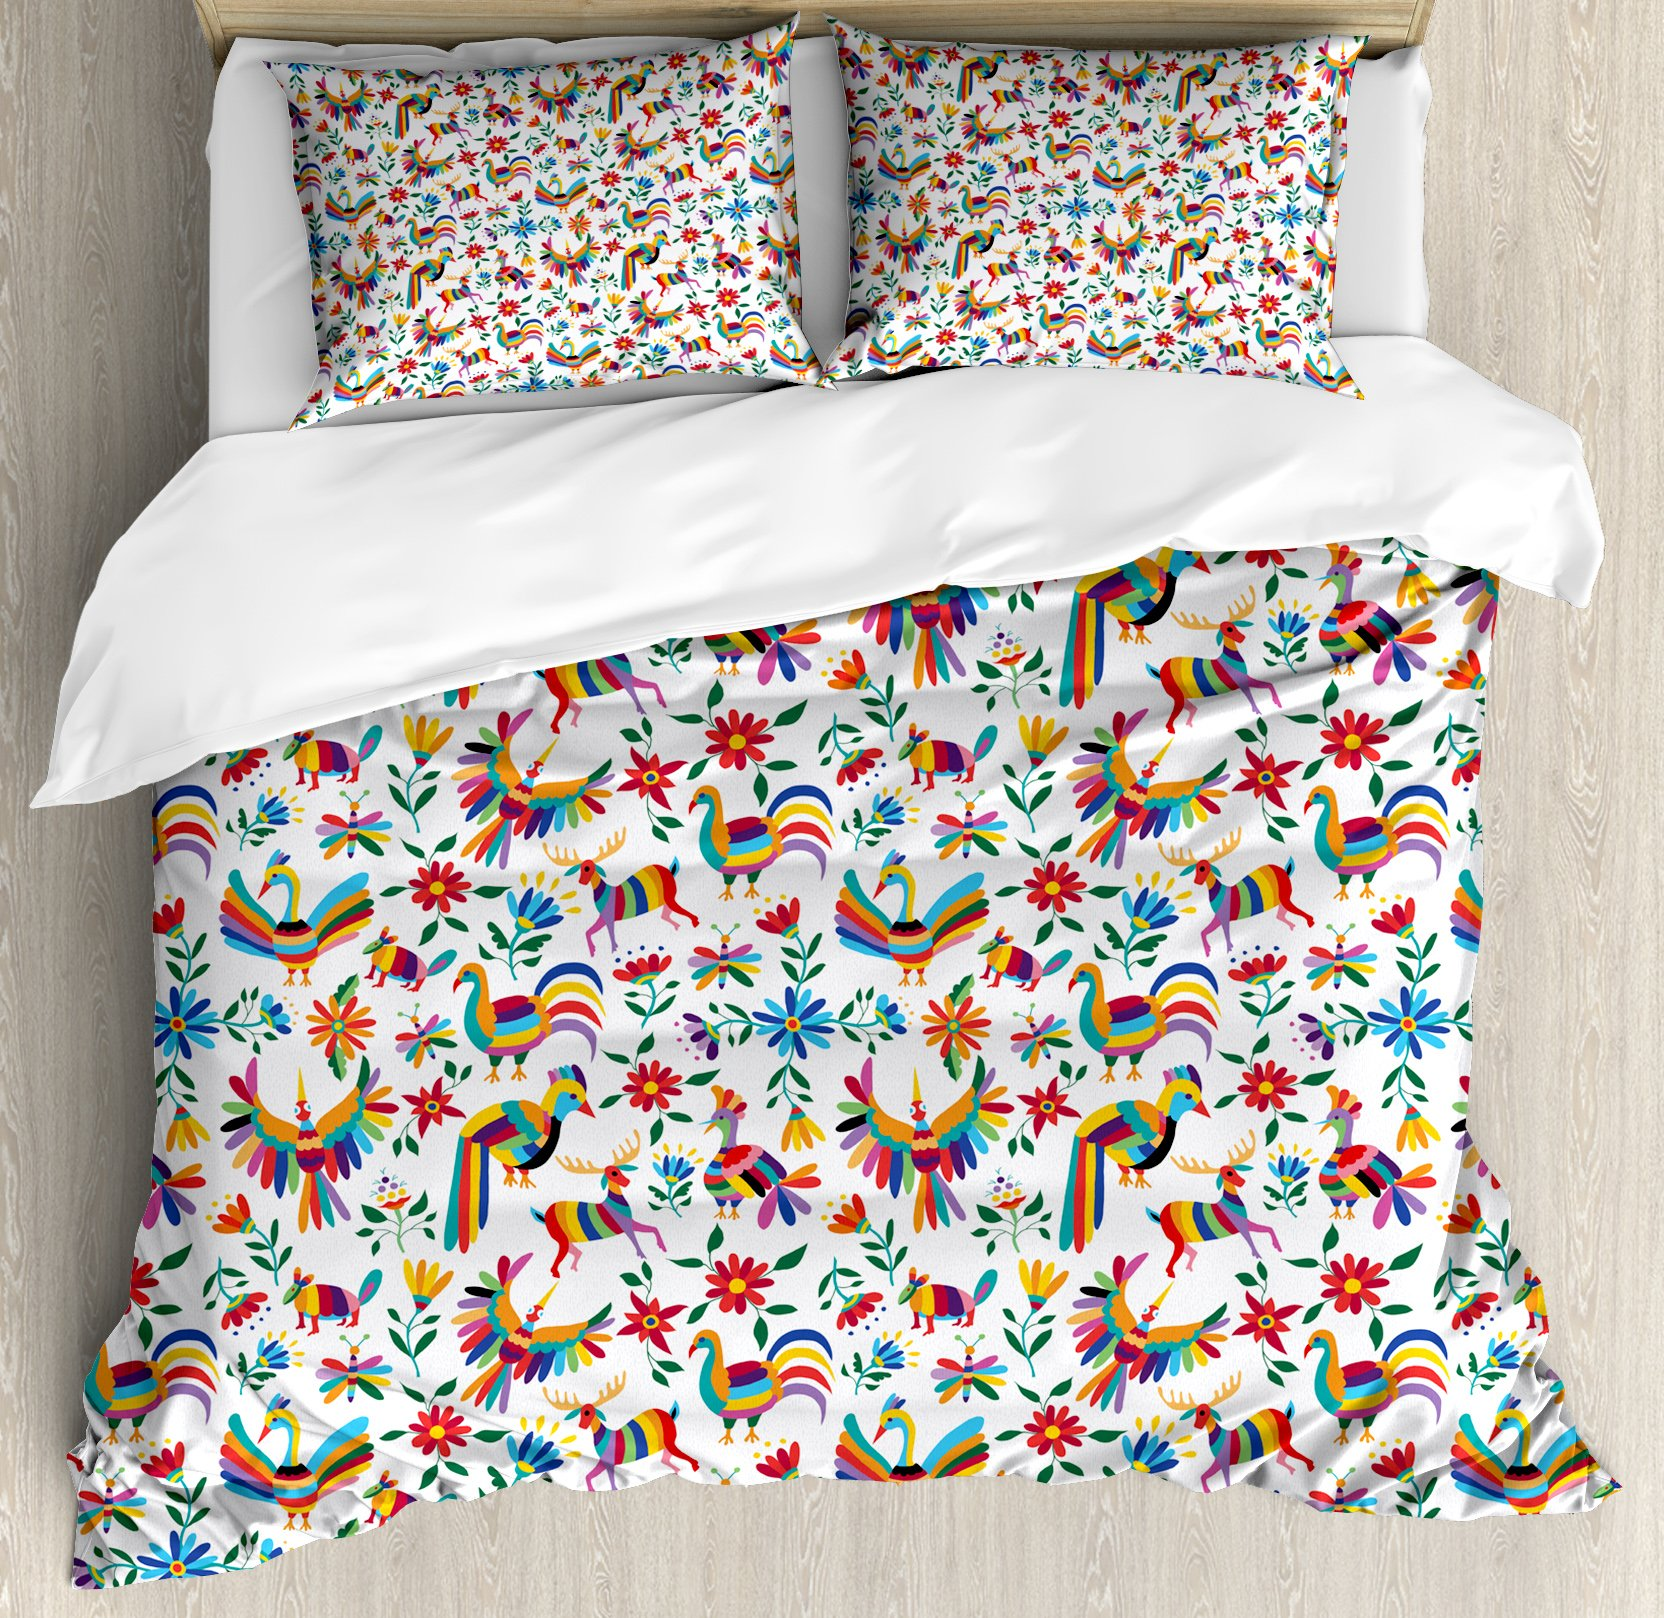 Ambesonne Mexican Duvet Cover Set King Size, Traditional Latin American Art Design with Natural Inspirations Flowers and Birds, Decorative 3 Piece Bedding Set with 2 Pillow Shams, Multicolor